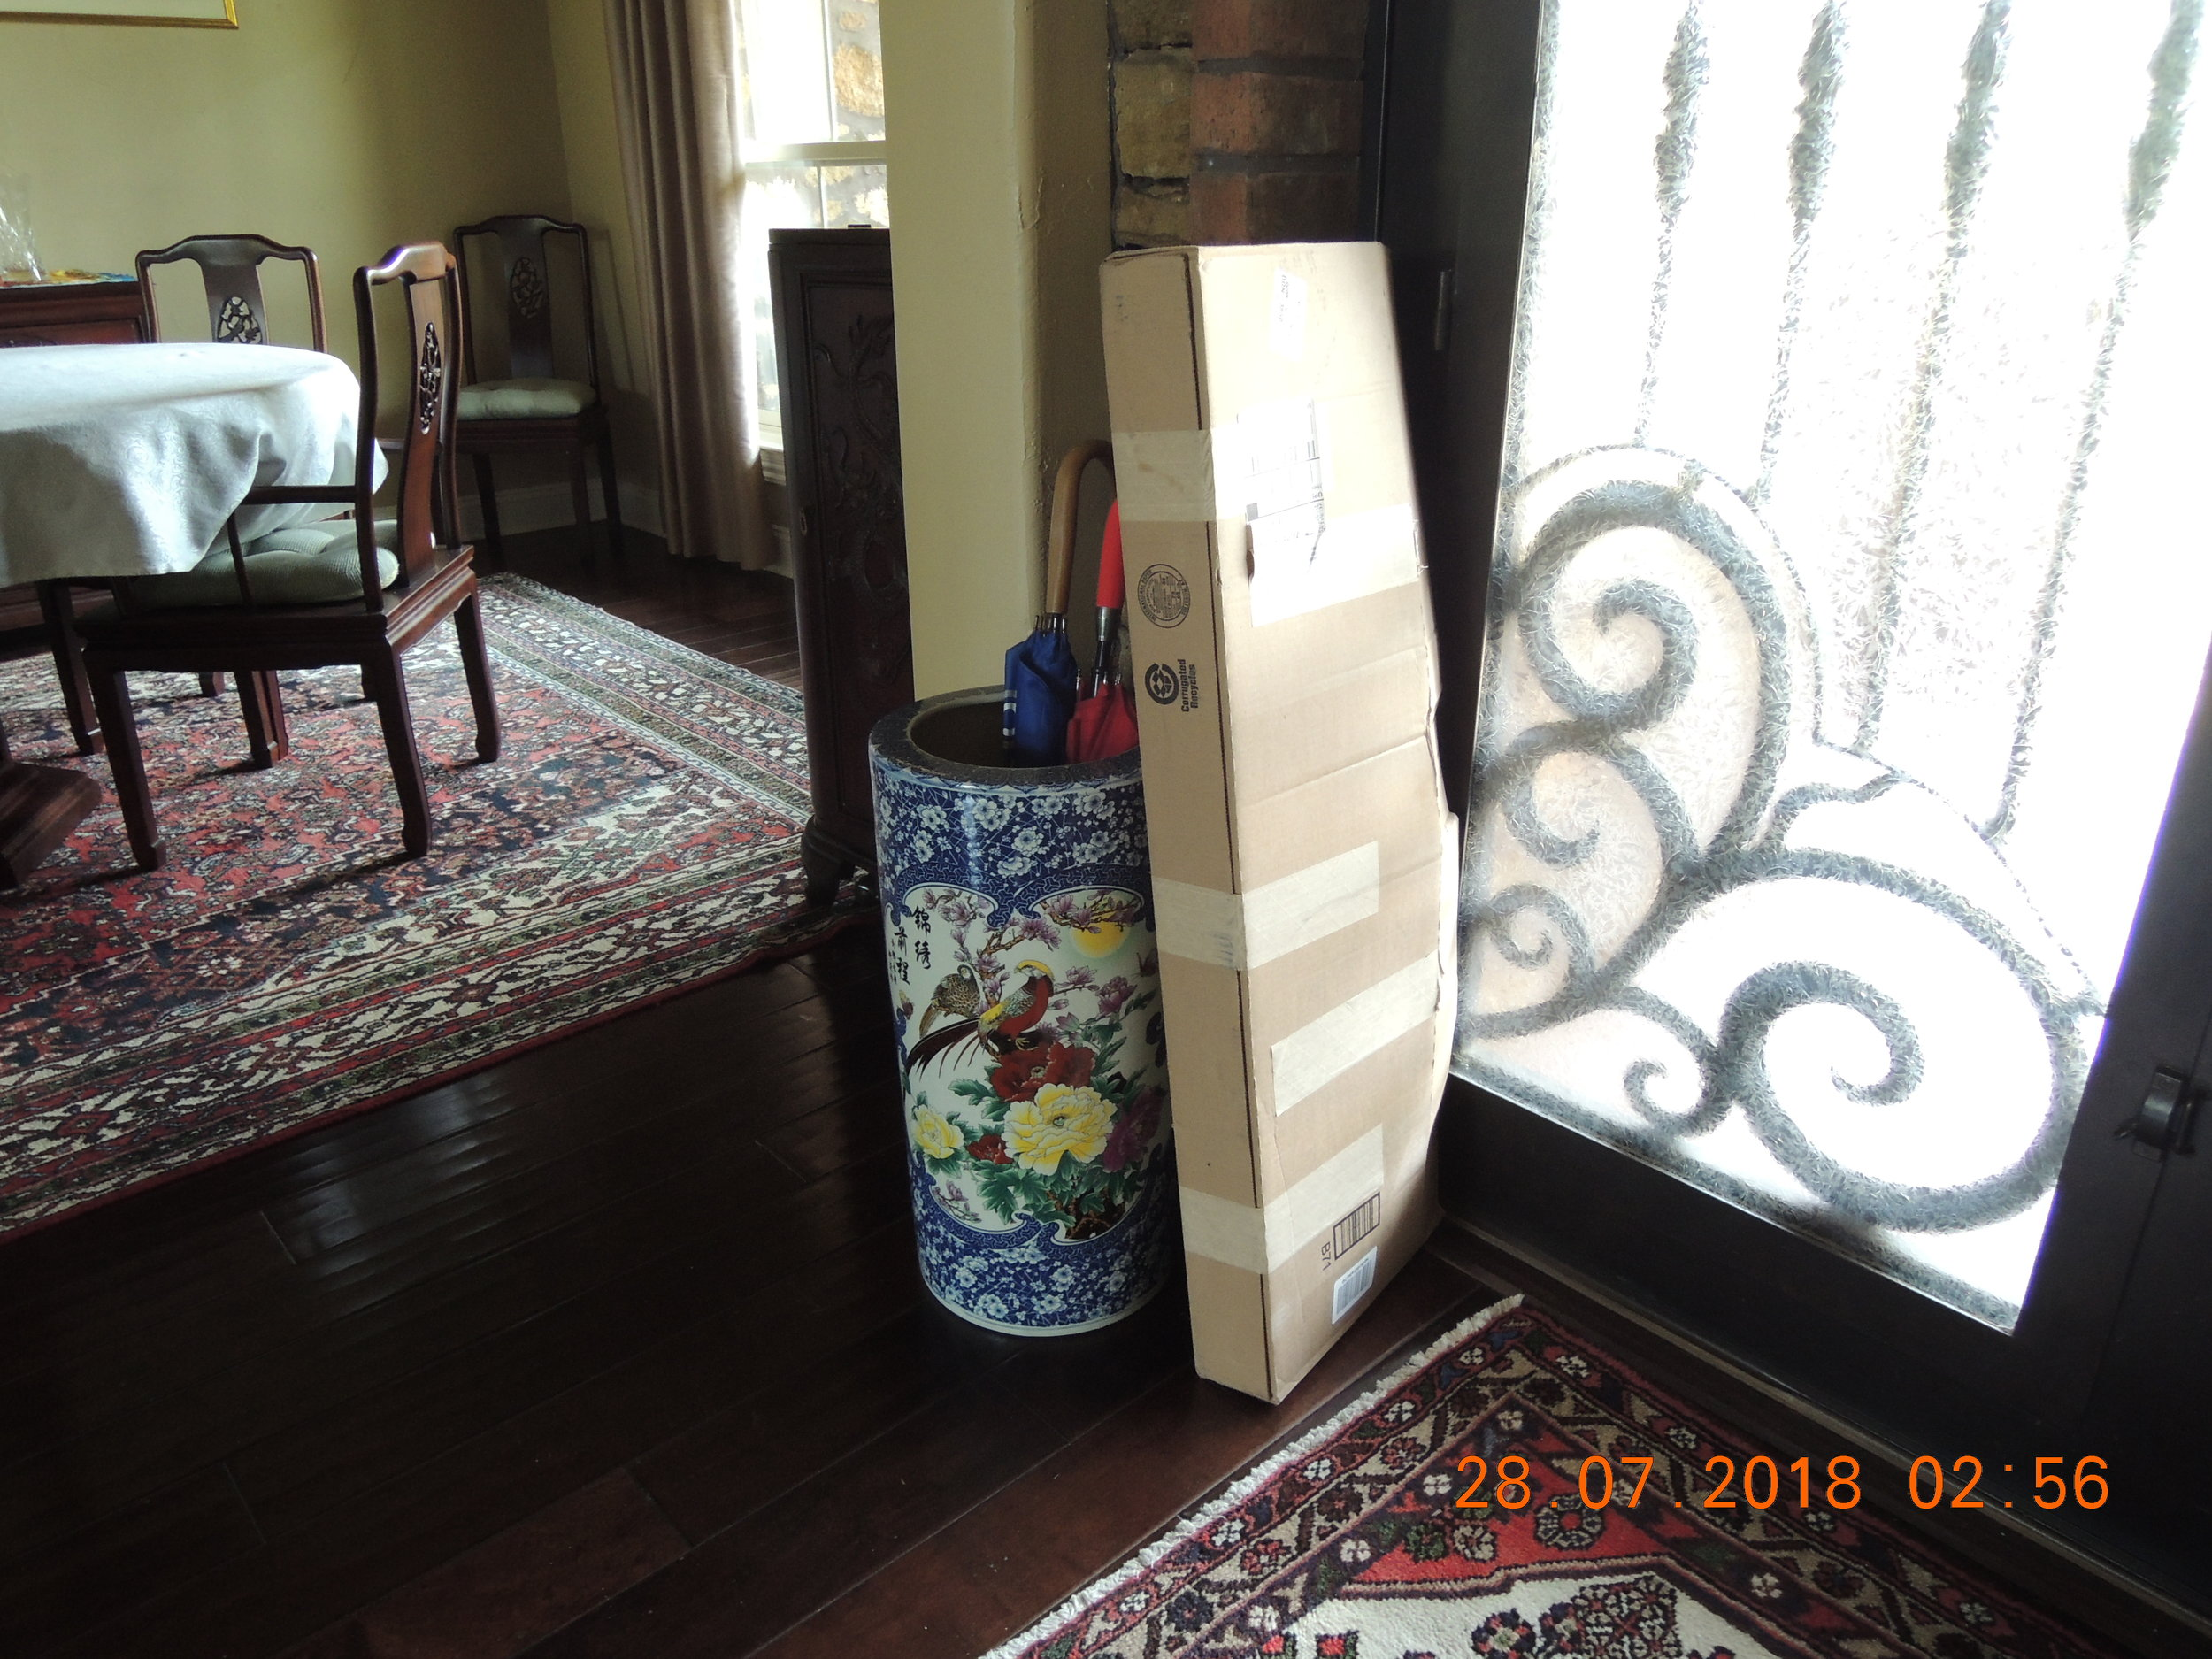 The package by the front door. It turned out to be a bird feeder stand and it looks a lot better than the last one.